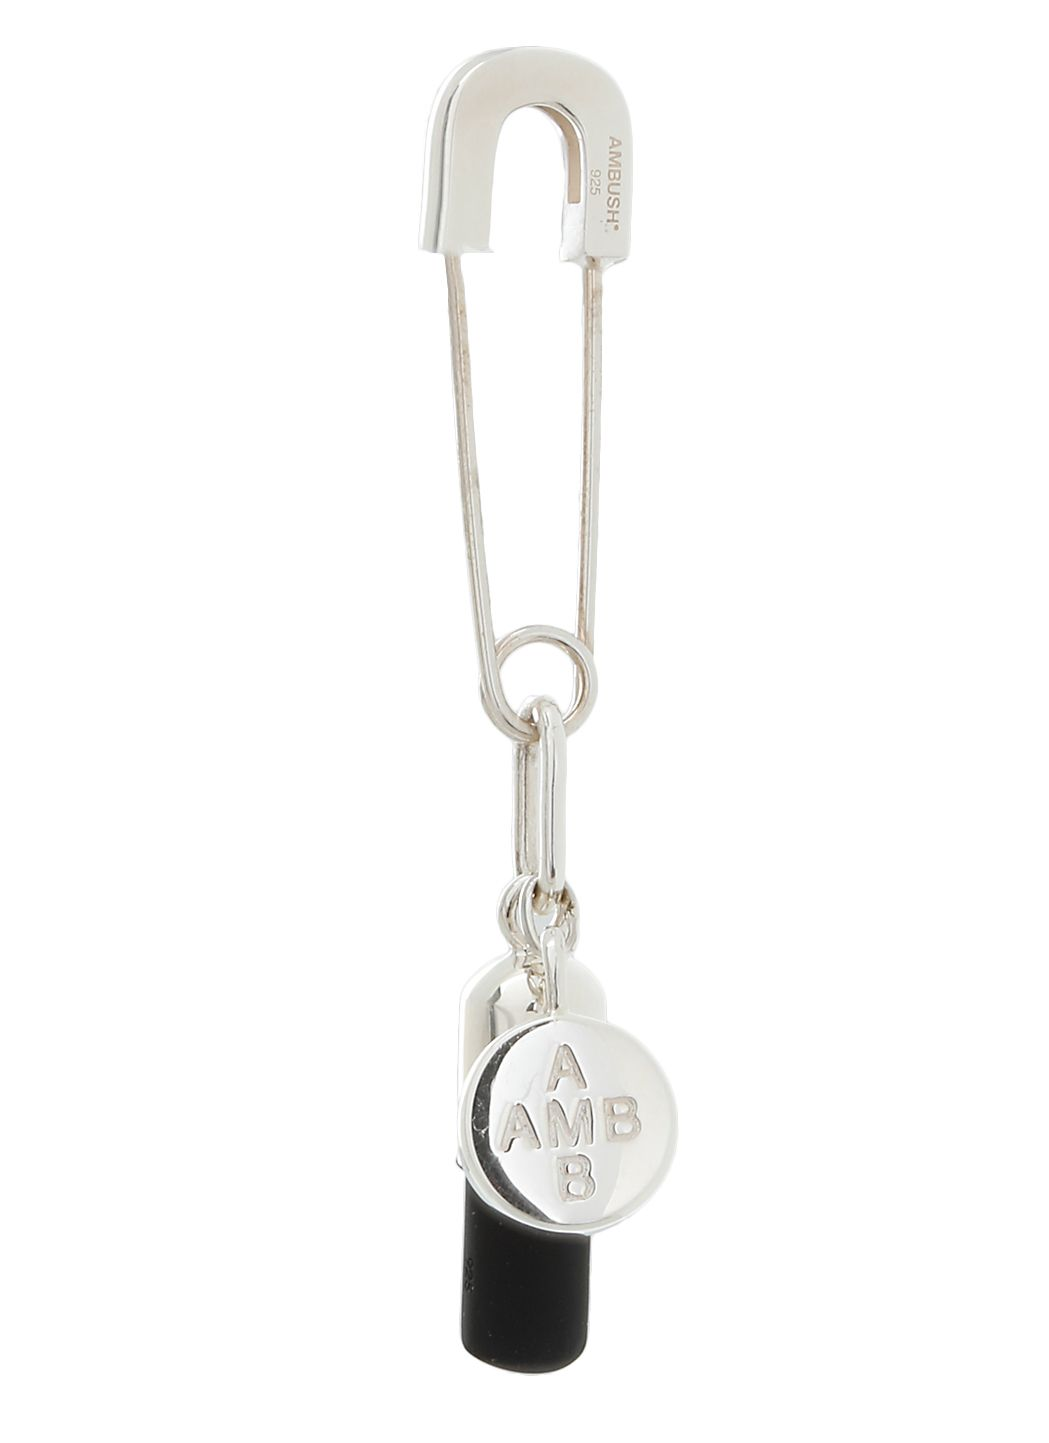 Pill safety pin earring